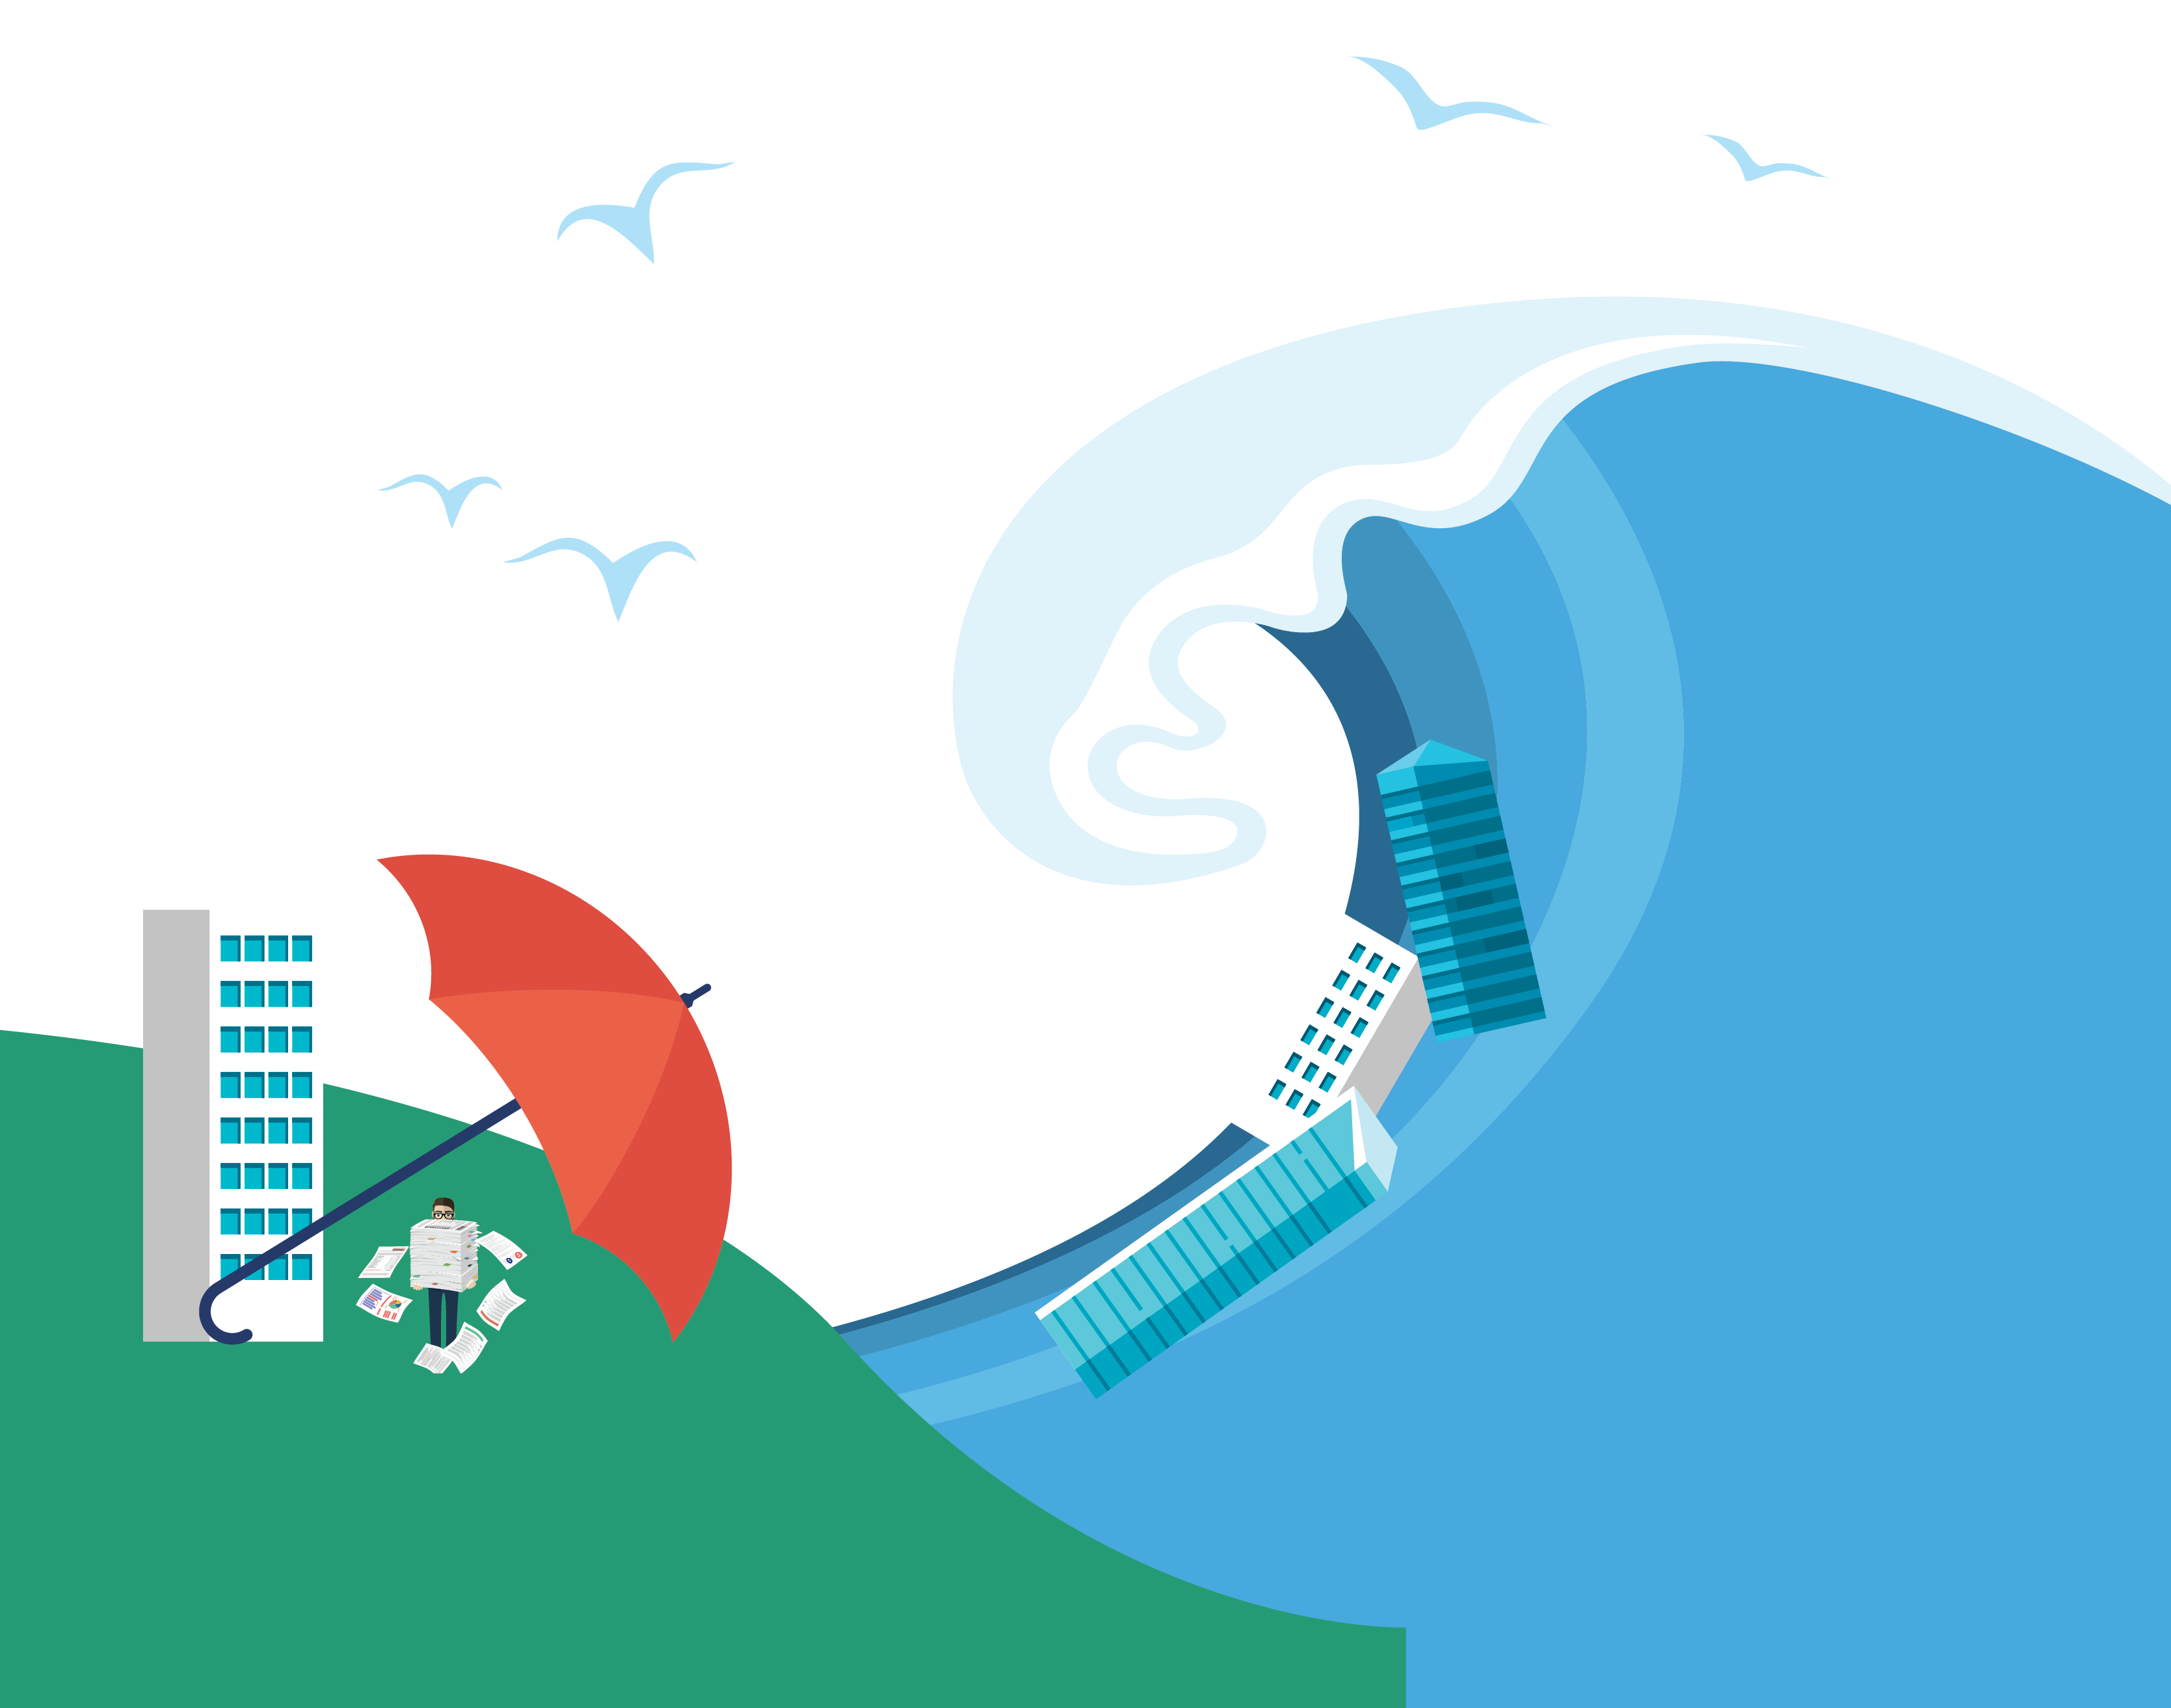 infographic-resources-the-impending-vendor-risk-management-tsunami.png